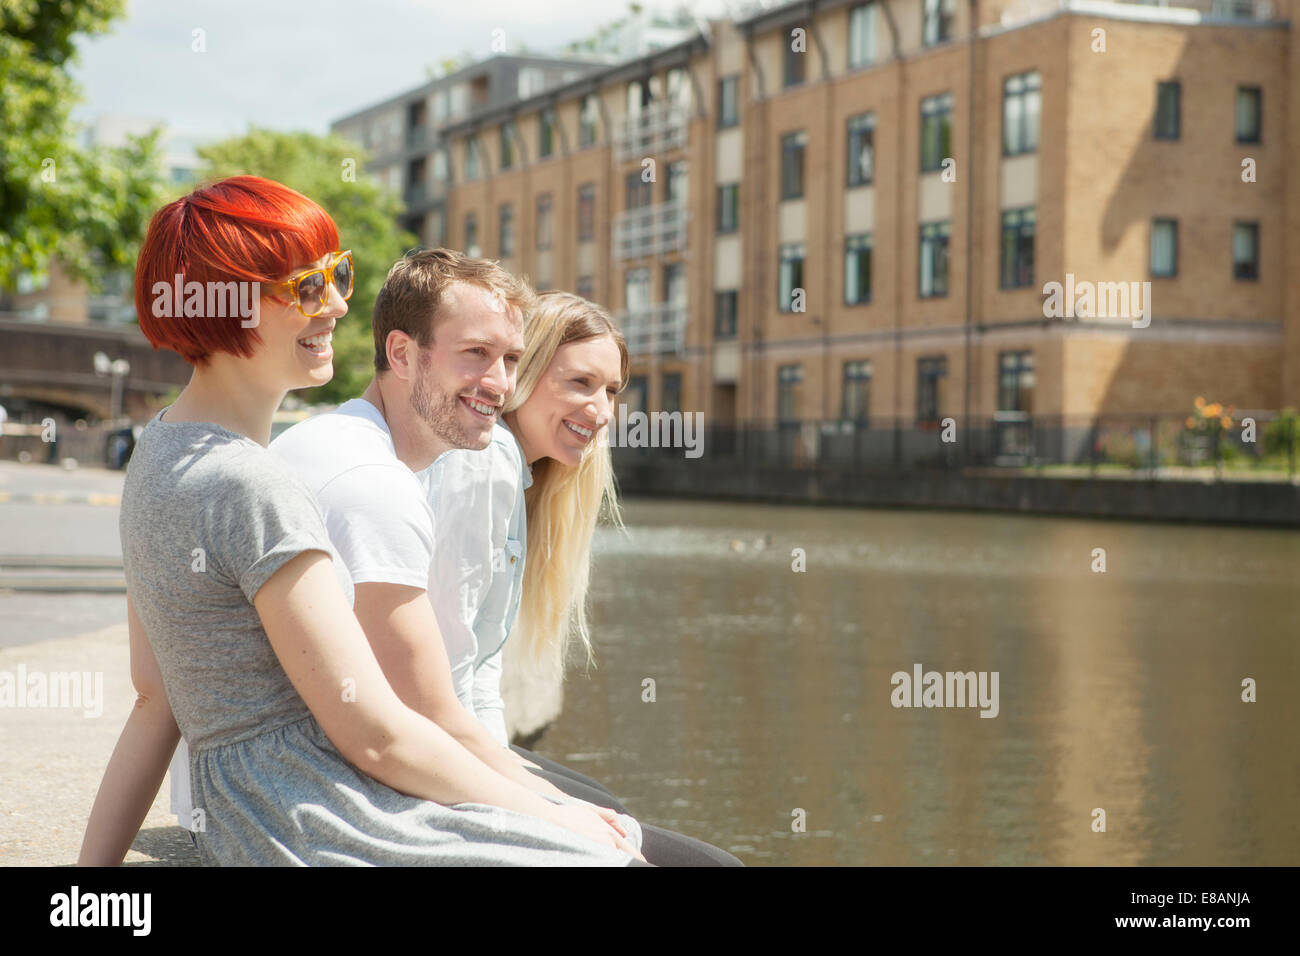 Friends sitting on canal side, East London, UK - Stock Image